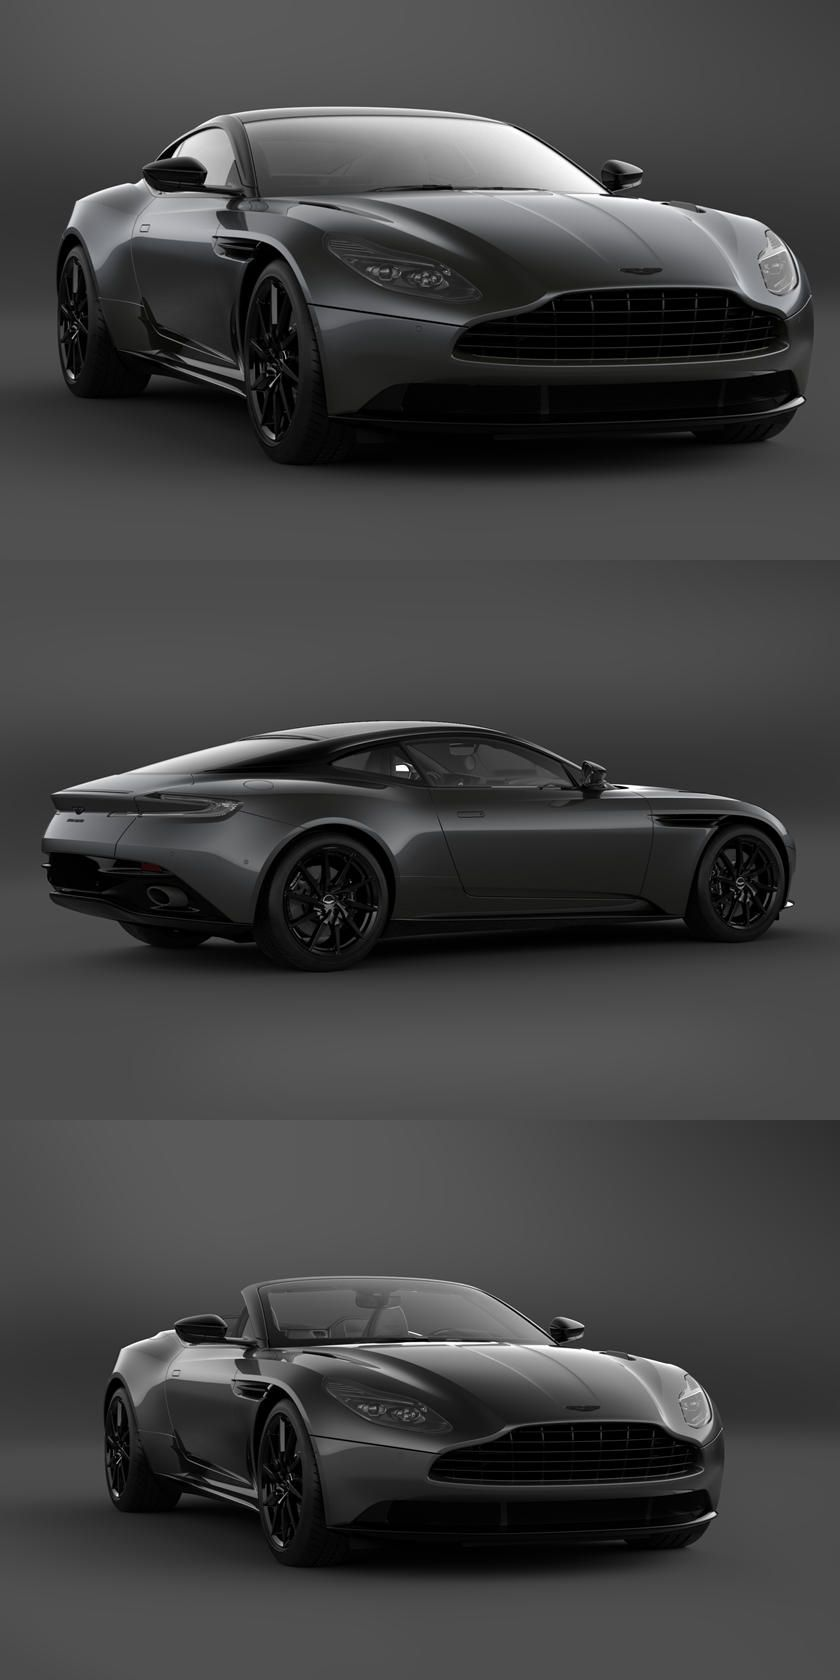 2021 Aston Martin Db11 Shadow Edition Limited To 300 Examples Aston Martin S New Stylish Special Edition Db11 Super Luxury Cars Aston Martin Db11 Aston Martin